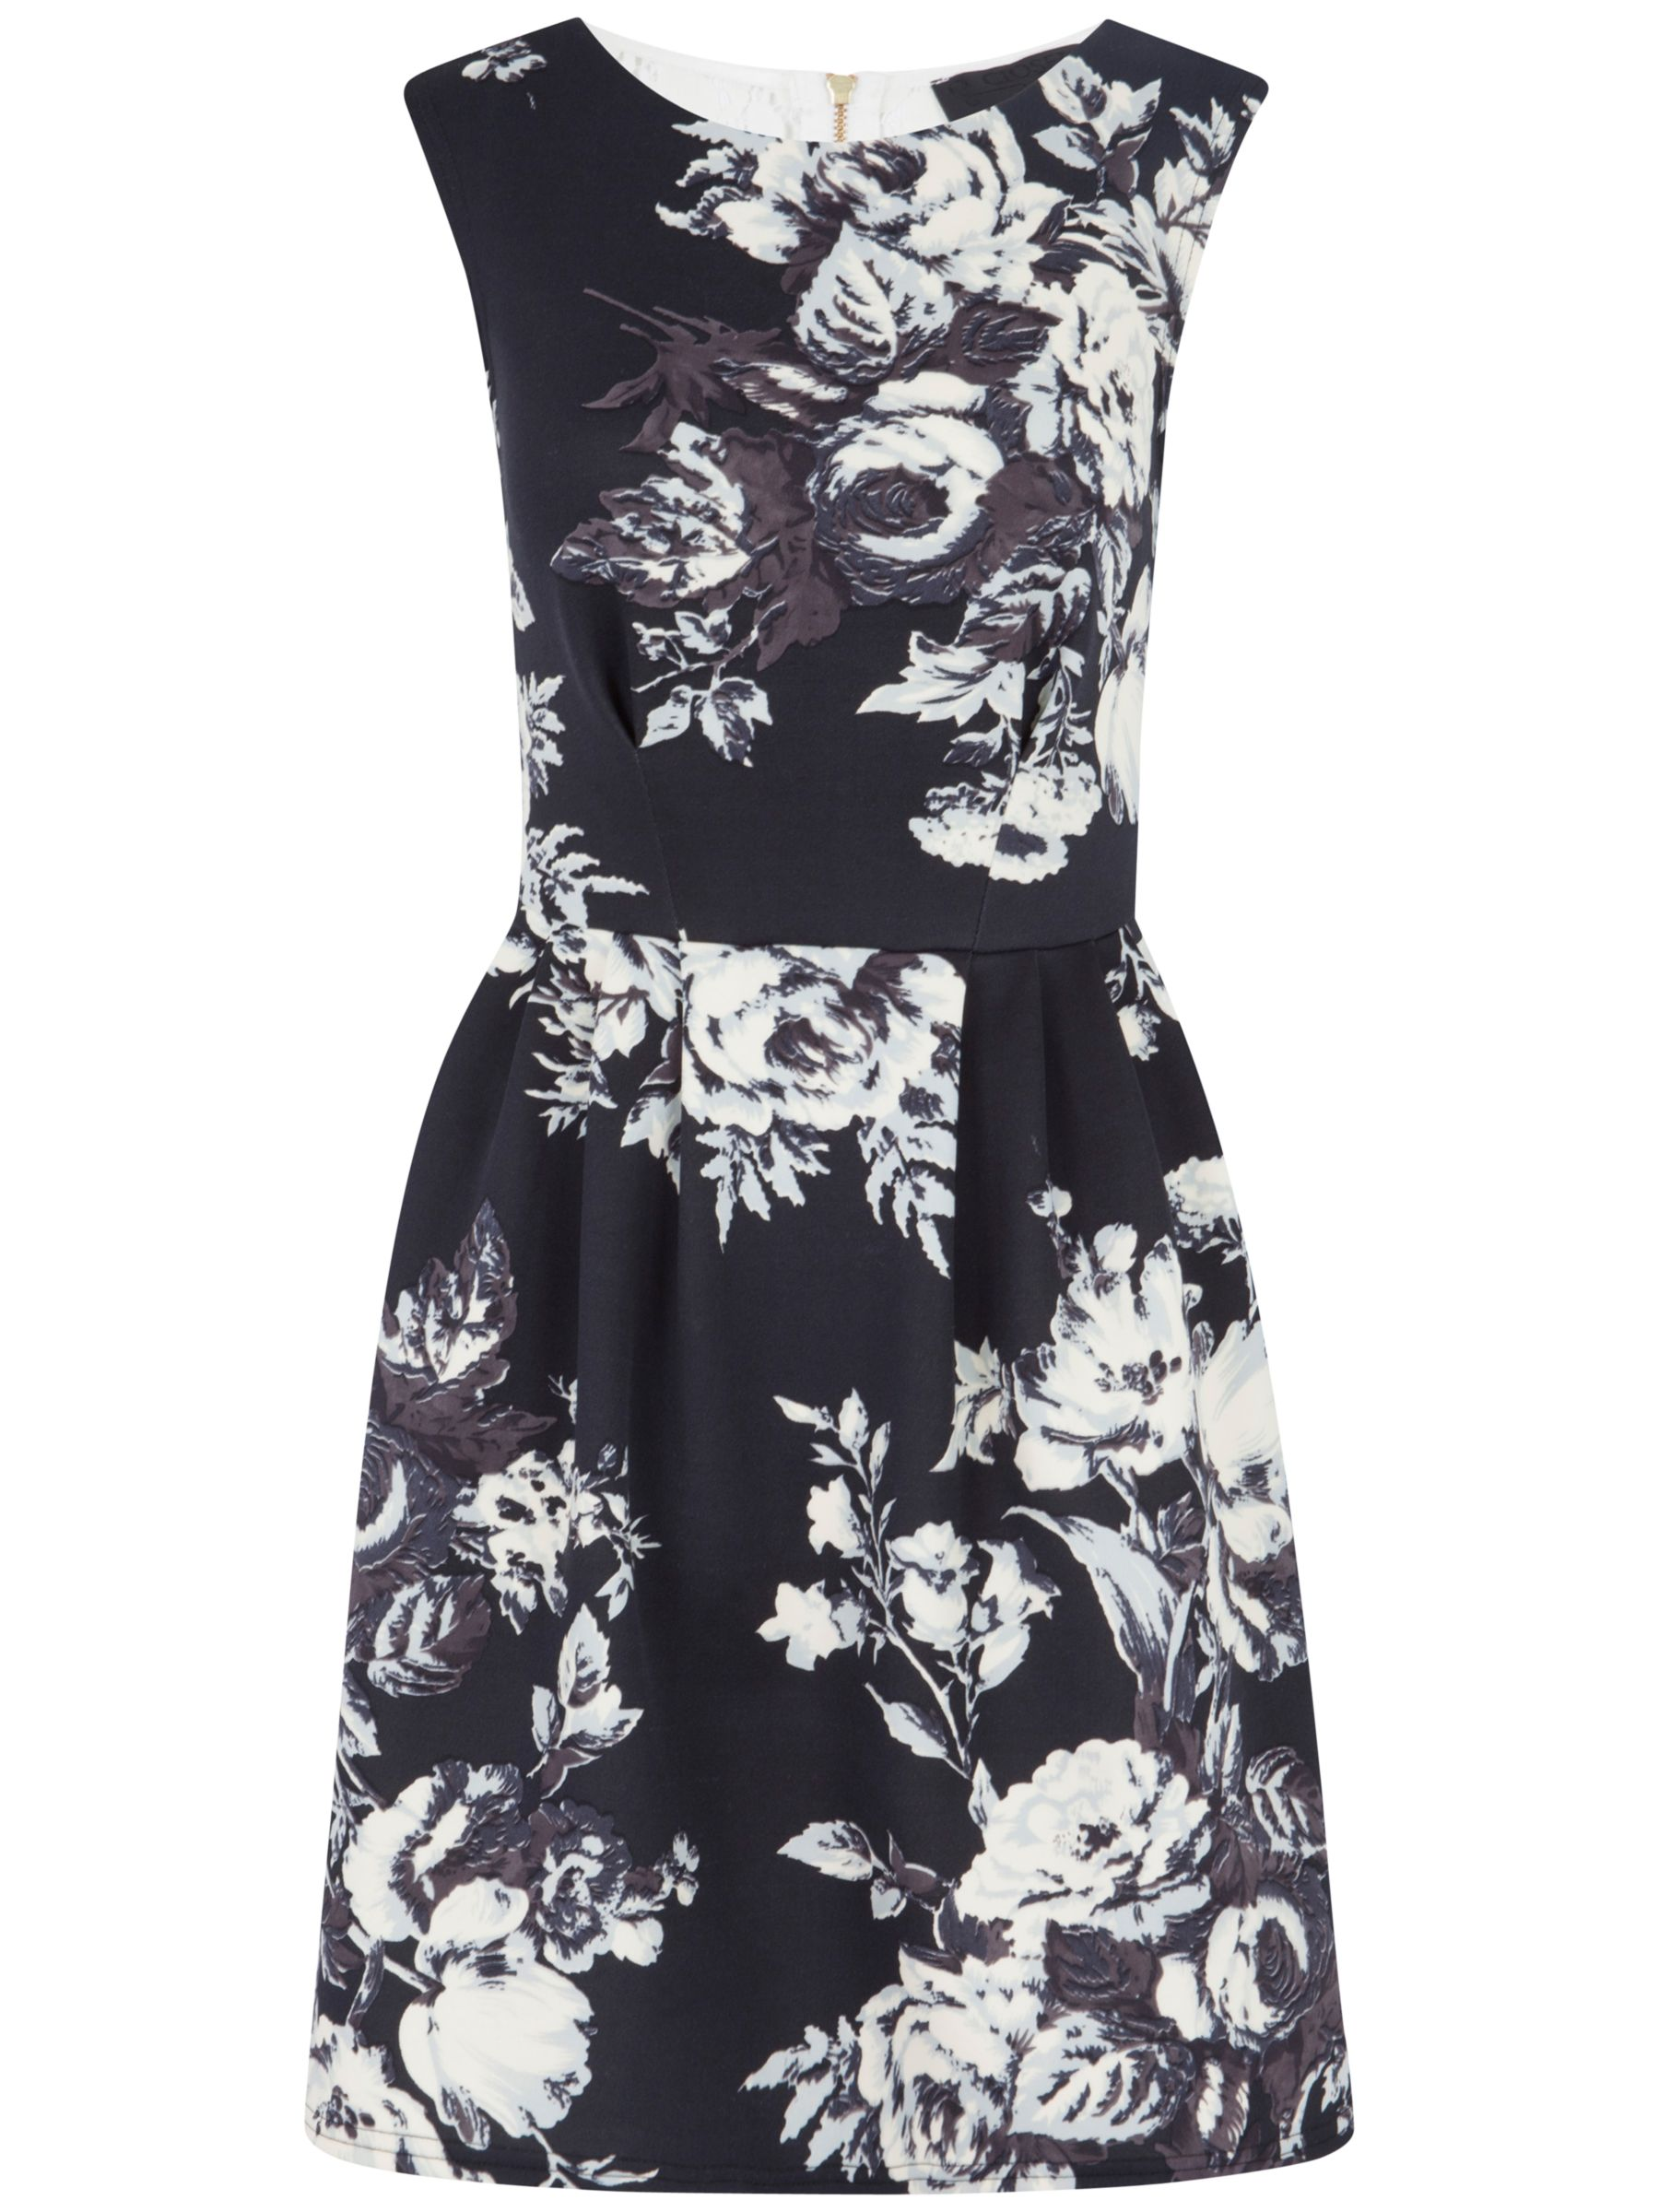 closet bold flower print scuba dress black and white, closet, bold, flower, print, scuba, dress, black, white, 10|12|14, clearance, womenswear offers, womens dresses offers, women, inactive womenswear, new reductions, womens dresses, special offers, 1697760